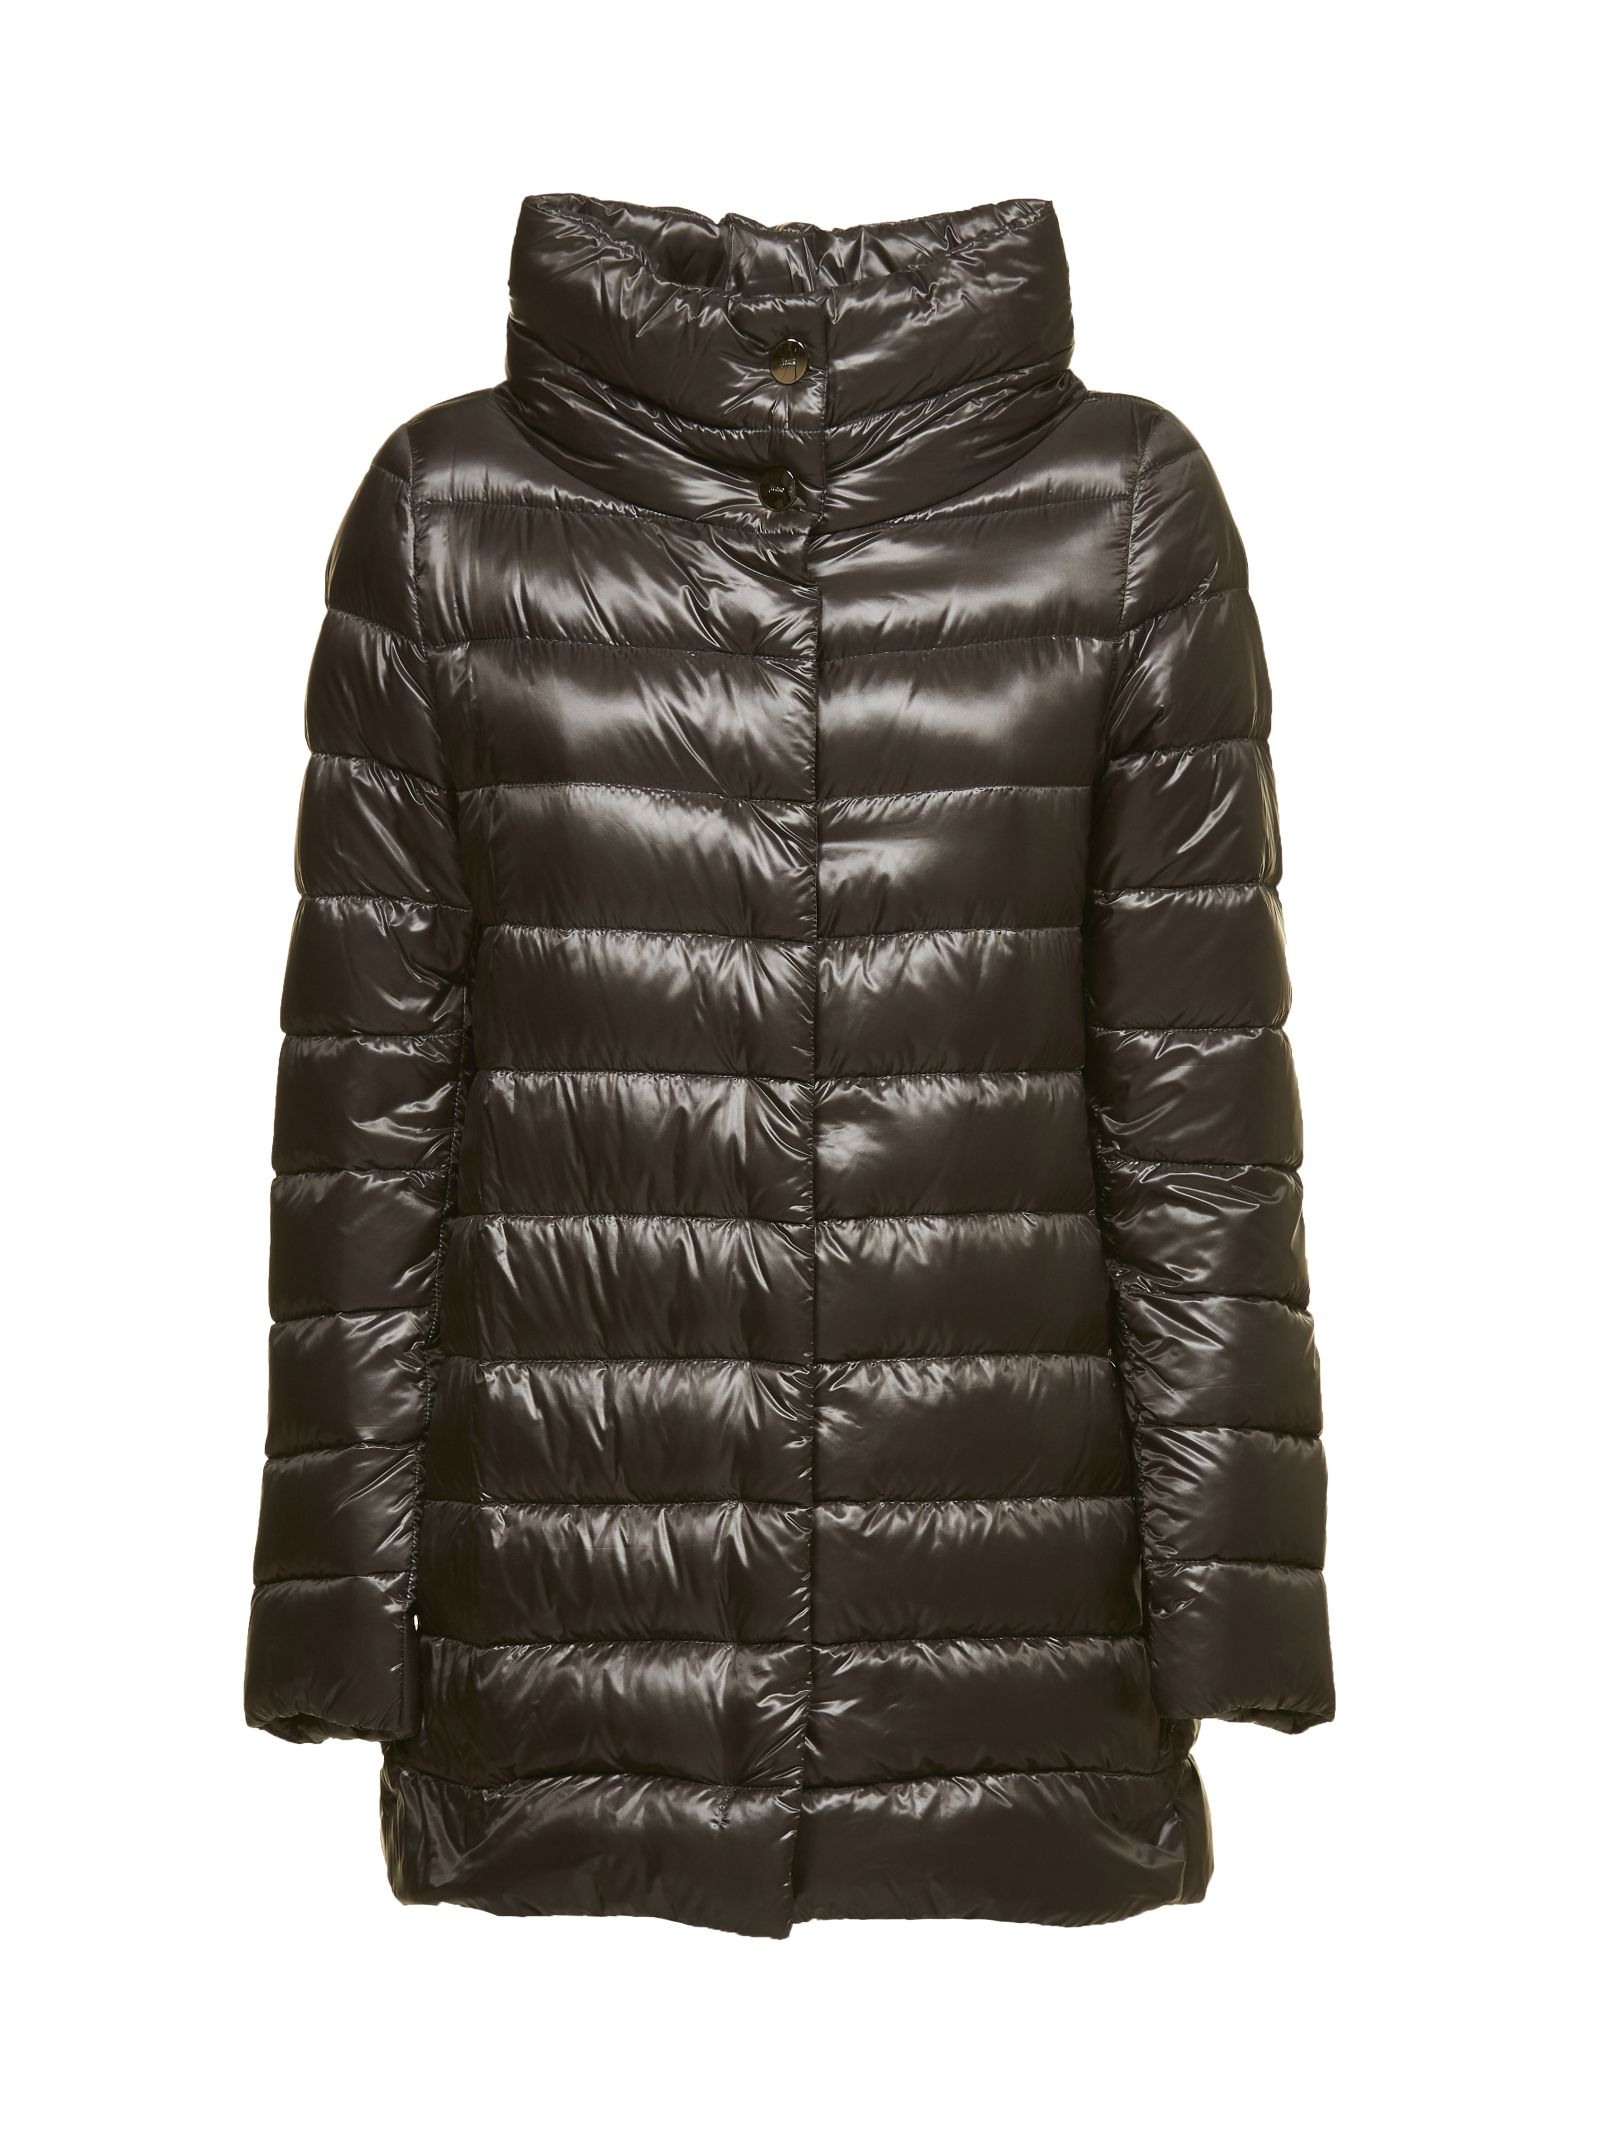 Herno Concealed Front Closure Padded Jacket